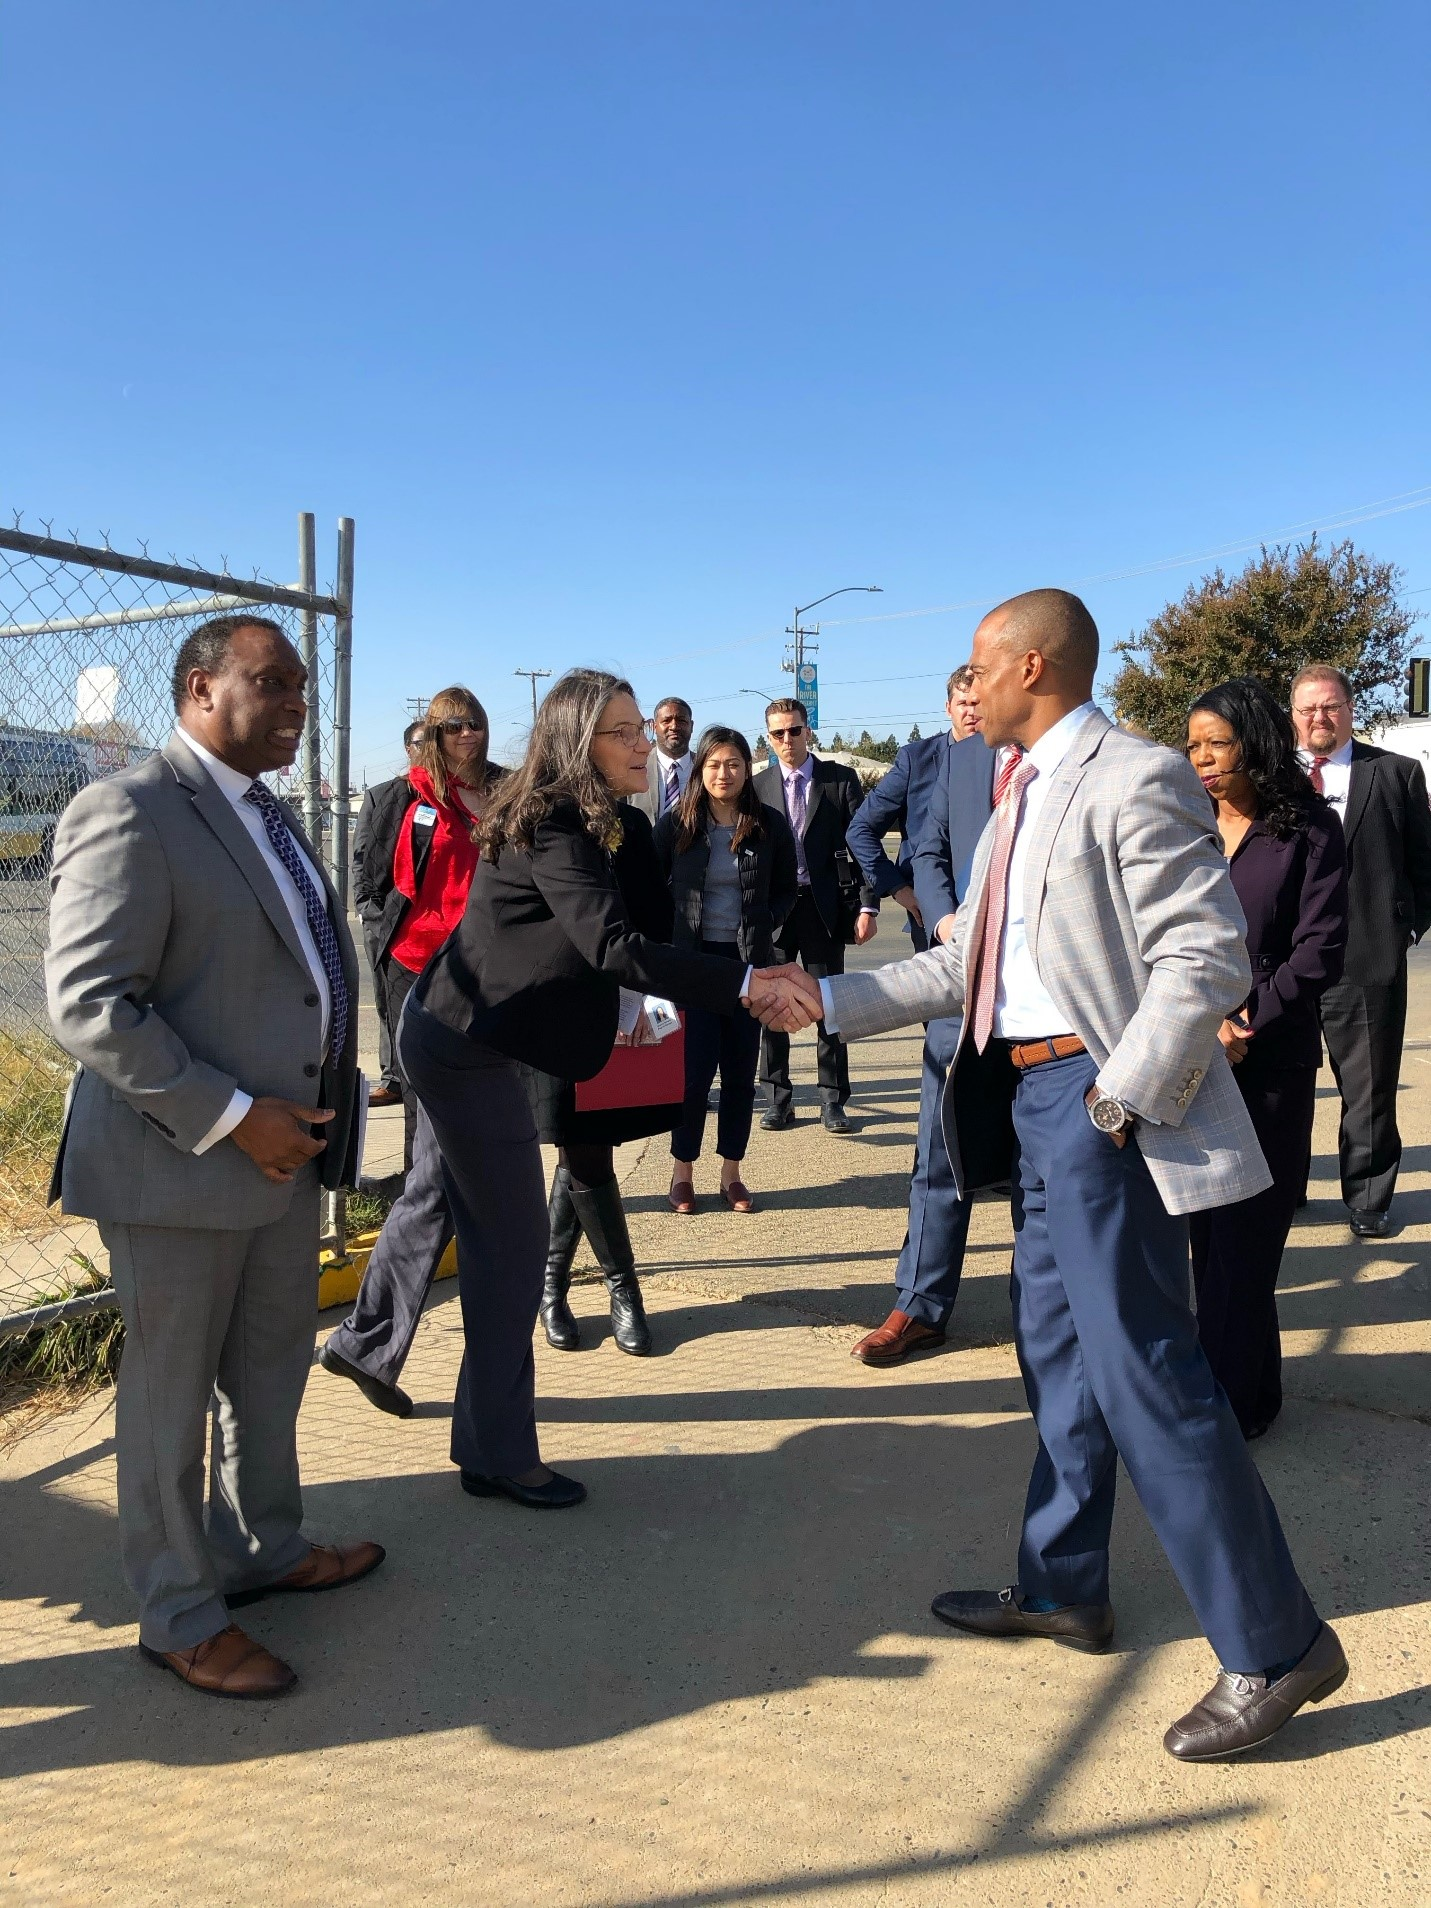 Executive Director Turner meets with Opportunity Zone leaders in Sacramento